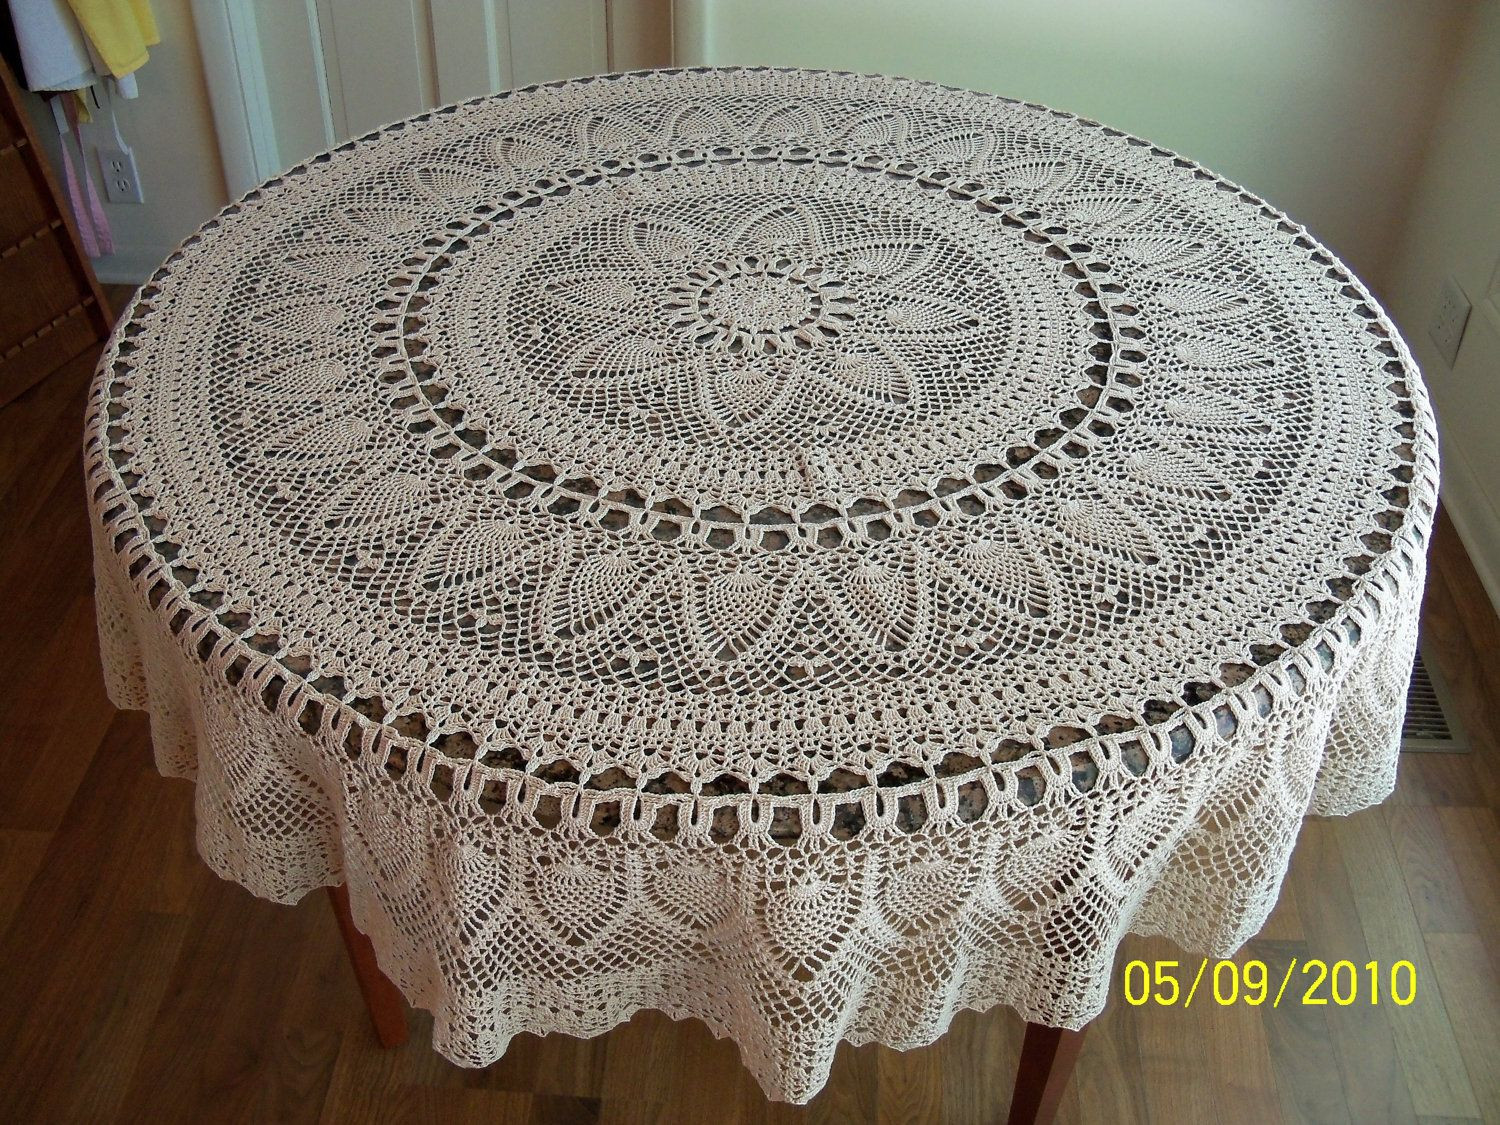 Crochet Round Tablecloths New Pineapple Tablecloth Pattern 7650a Of Unique 43 Pictures Crochet Round Tablecloths